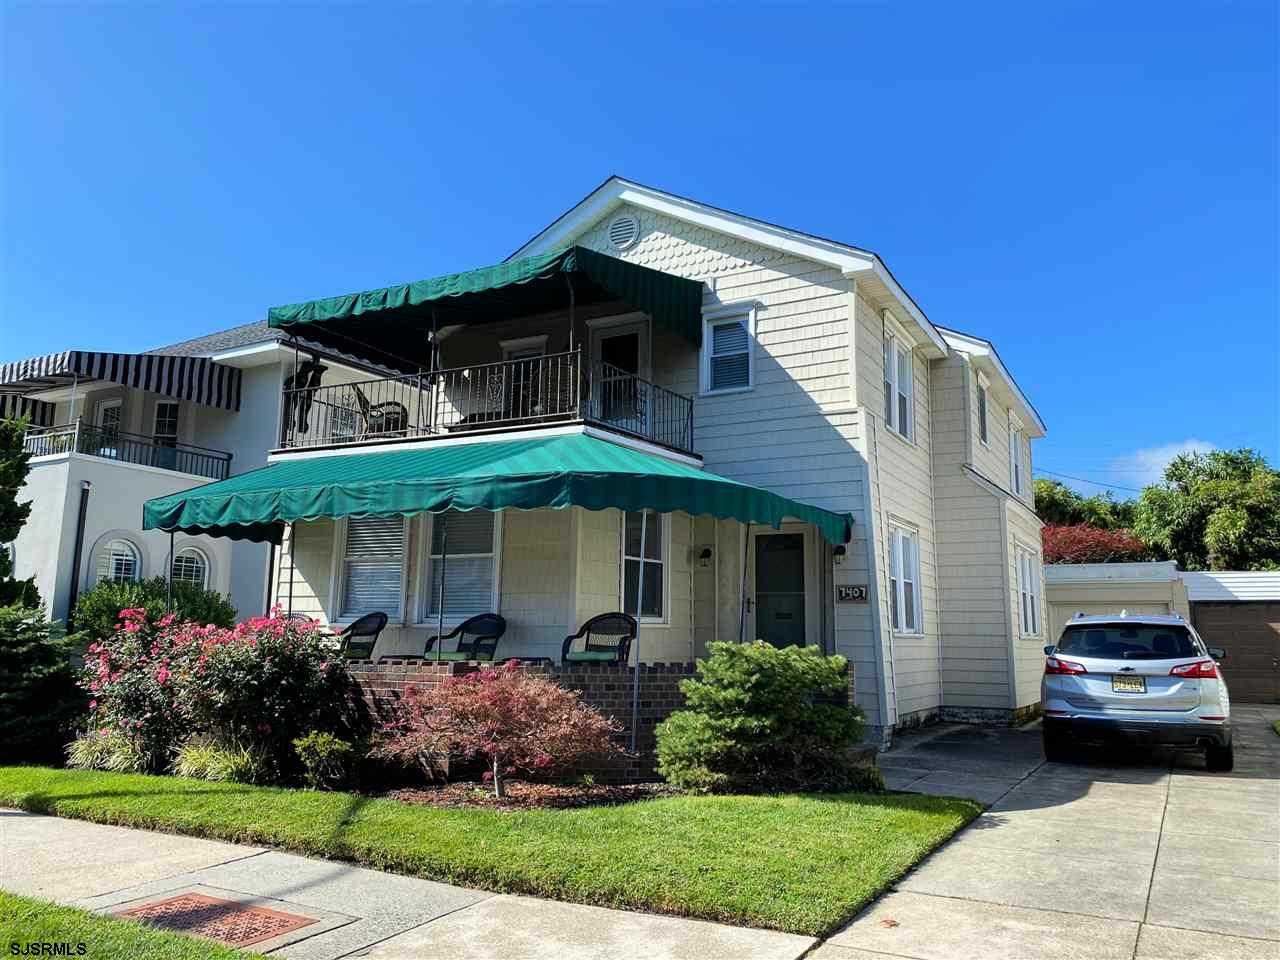 JUST TWO BLOCKS TO THE BEACH!! Large 4 bedroom, 2.5 home featuring hardwood floors throughout, wonde